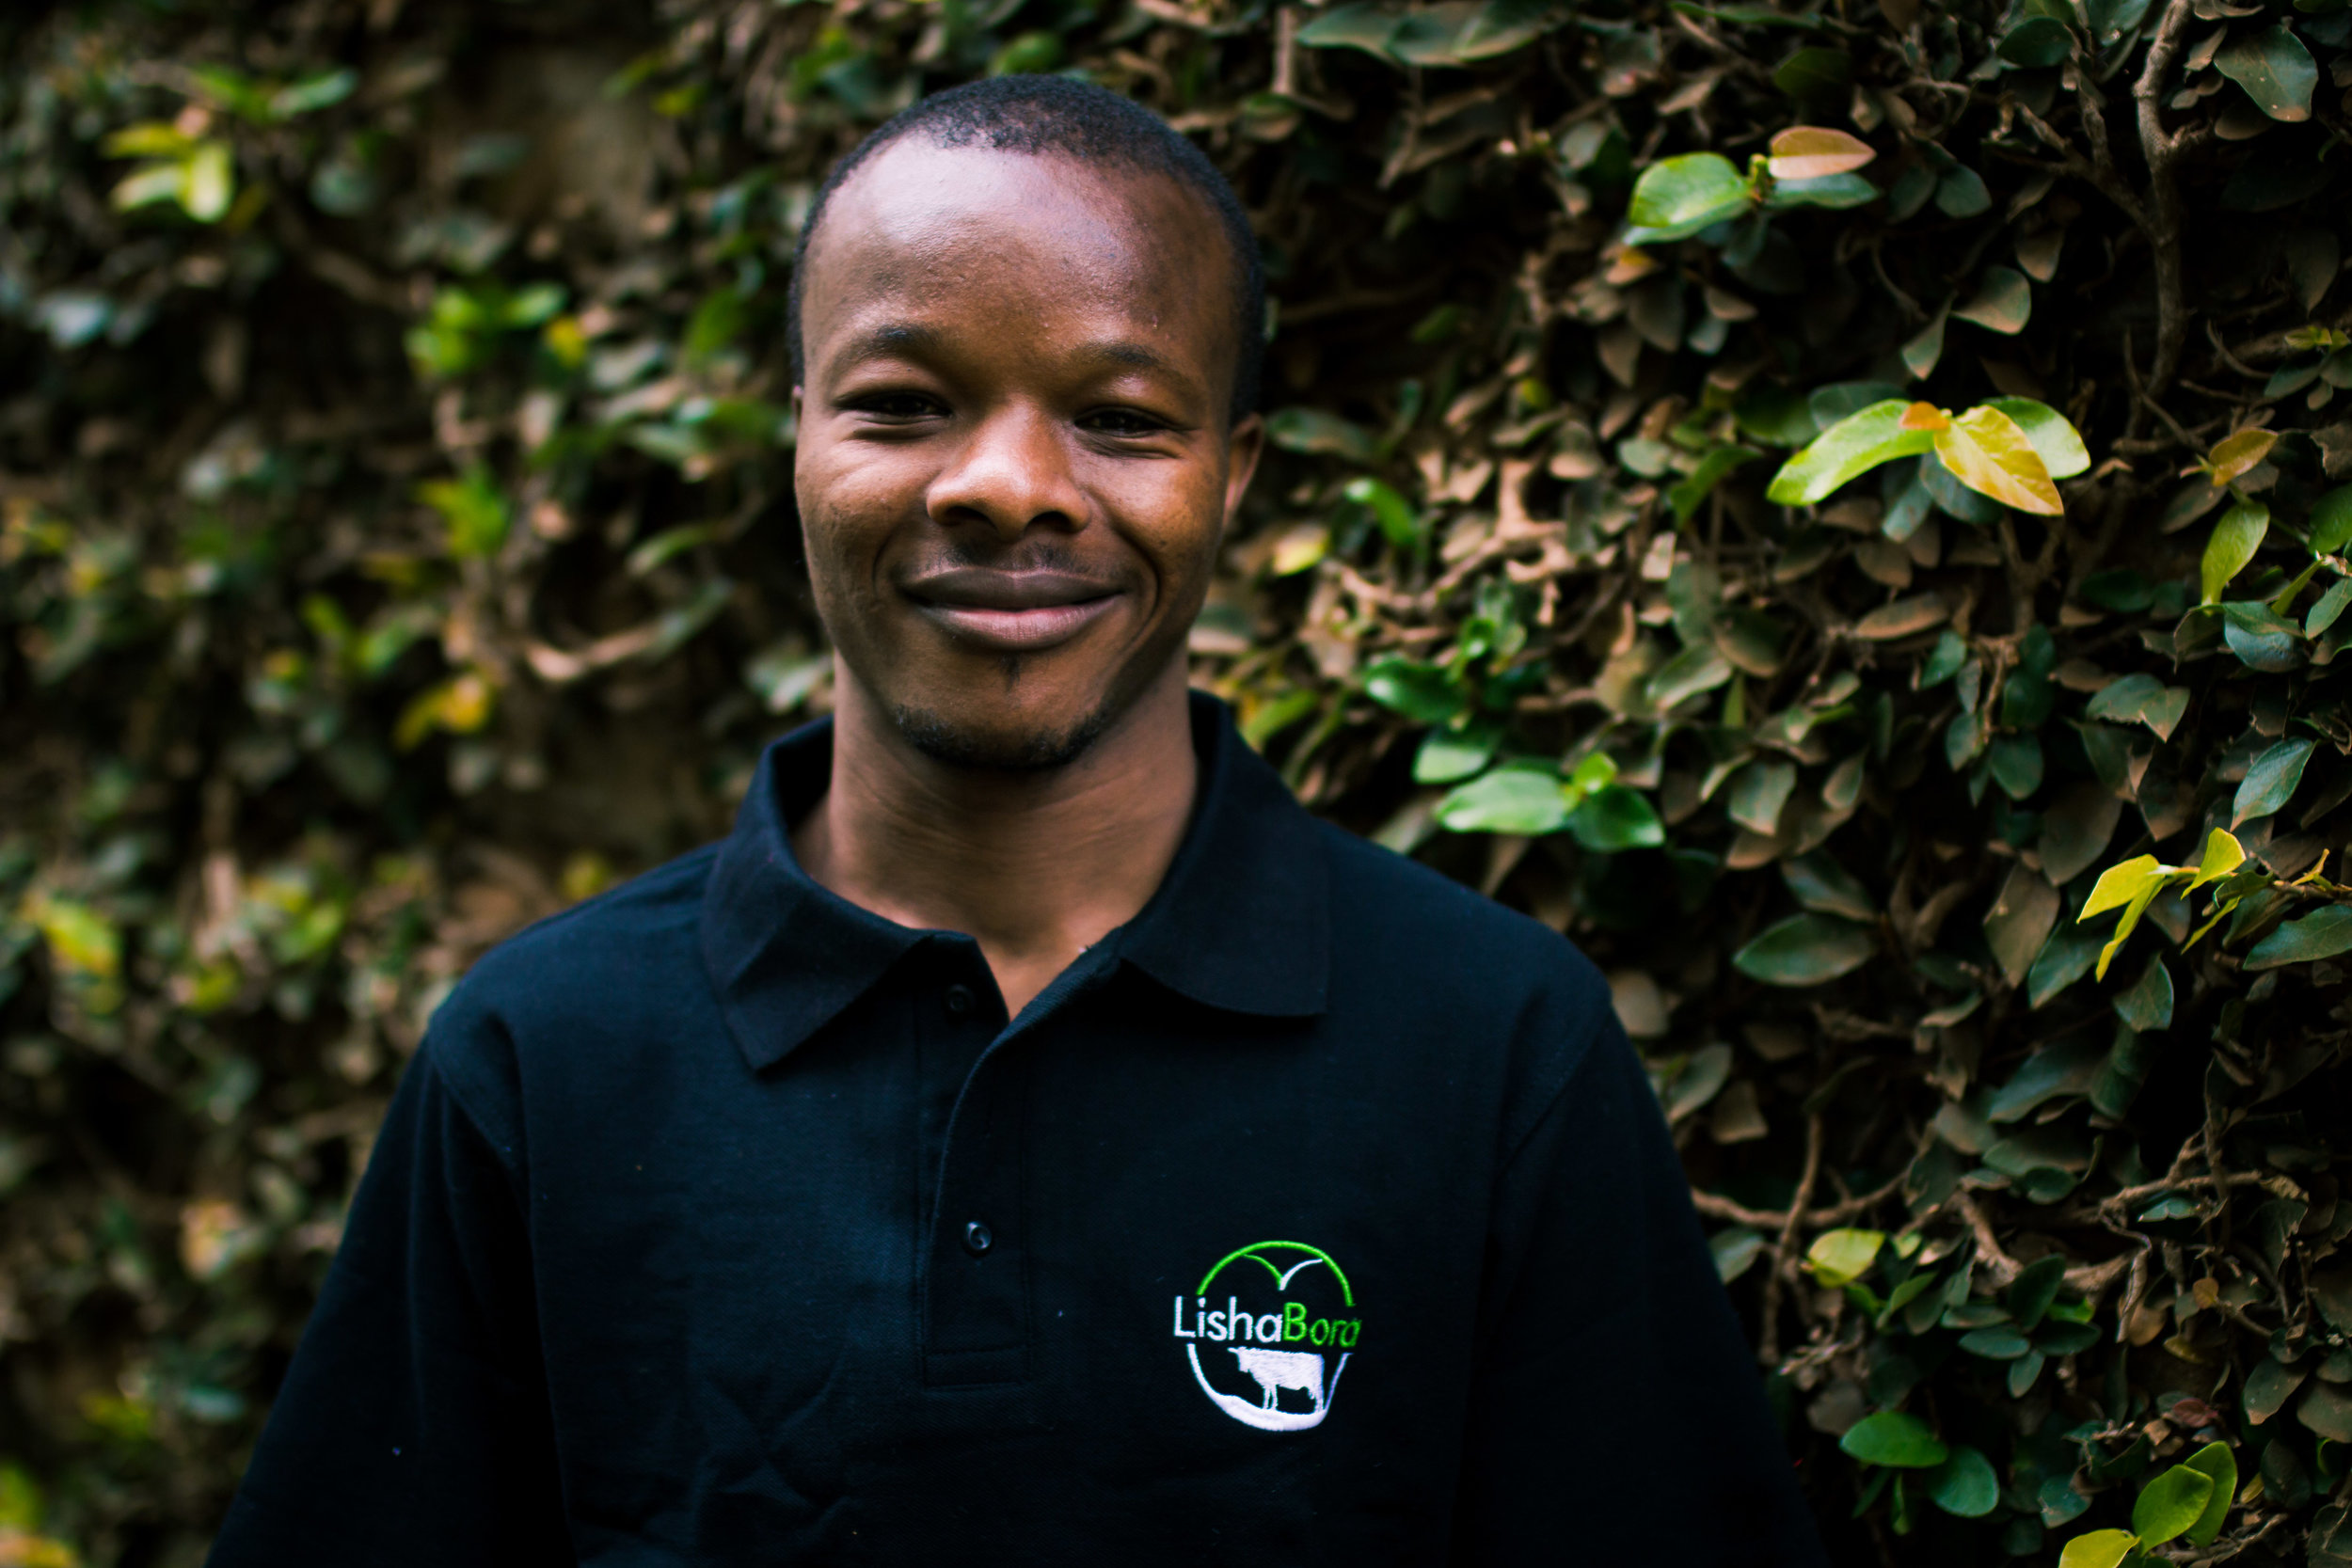 ROYLICK MACHARIA   Trader Account Manager   Roy has a background in sales and marketing with 8 years of experience in Business-to-Customer (B2C) sales in the communication industry in Kenya. He is a peoples person who is strongly committed to building new relationships while fostering better societal integration and upbuilding of low income communities. His interests include expanding his knowledge of new places, cultures and innovative solutions within social impact enterprises that address persistent and adaptive problems affecting our society.